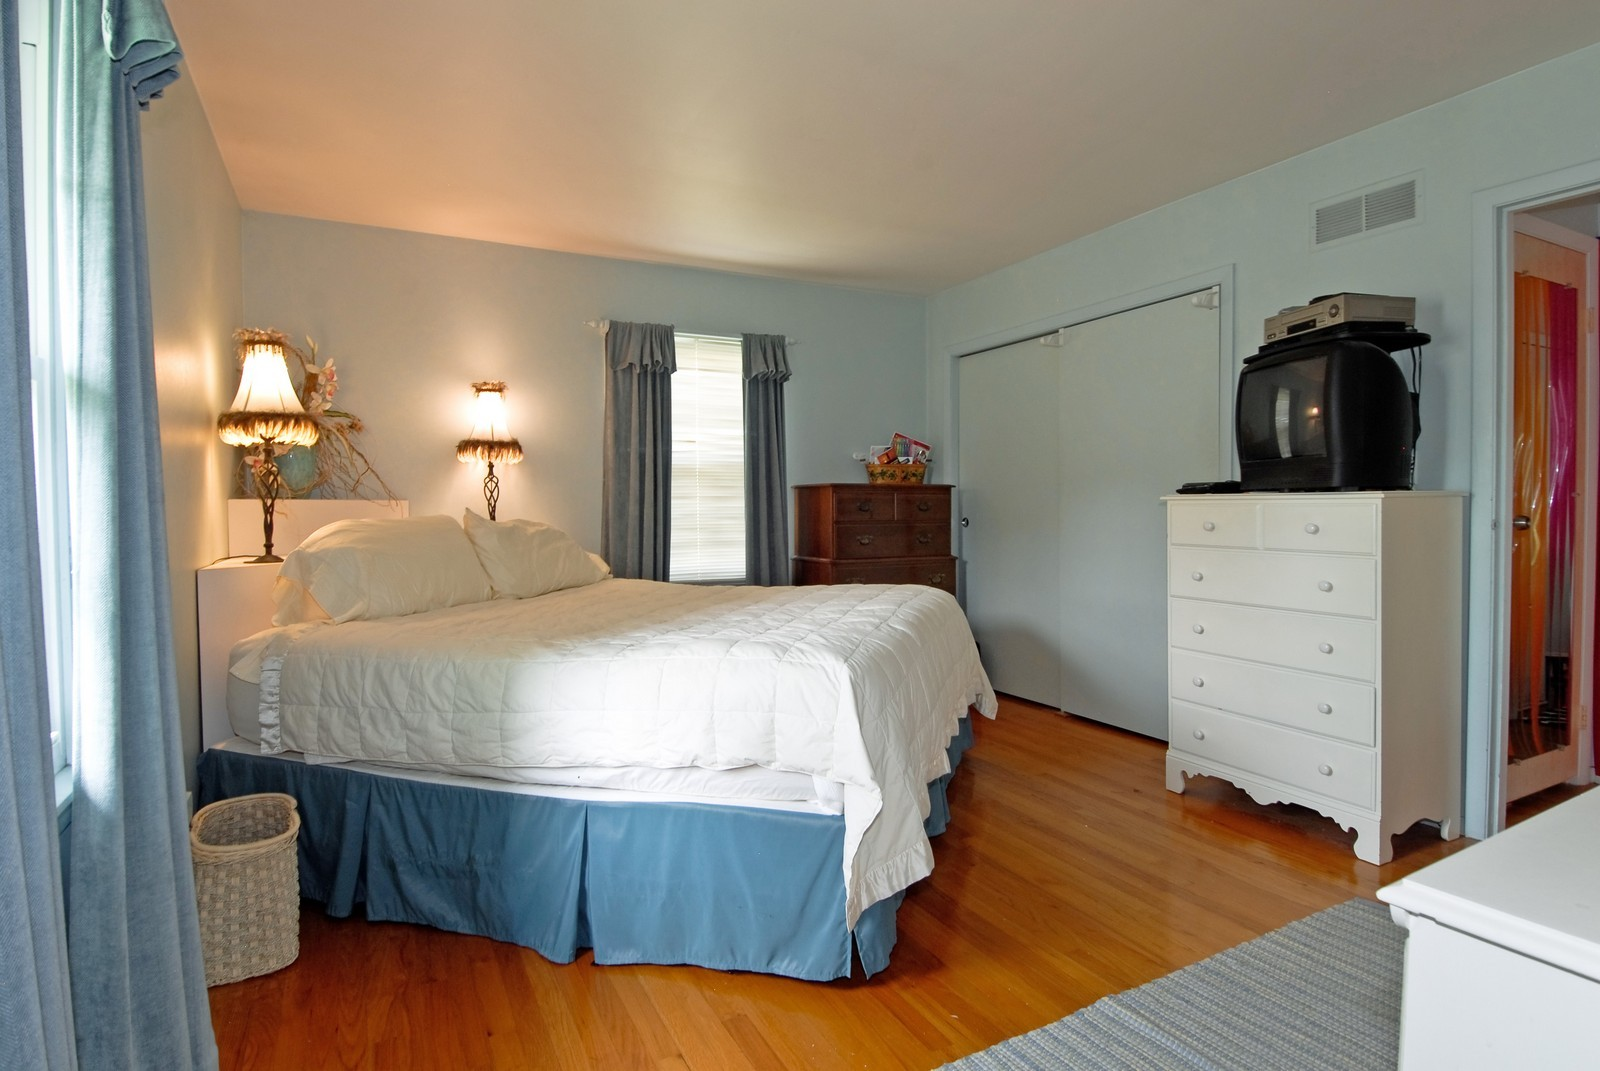 Real Estate Photography - 1112 S 11TH St, St Charles, IL, 60174 - Master Bedroom